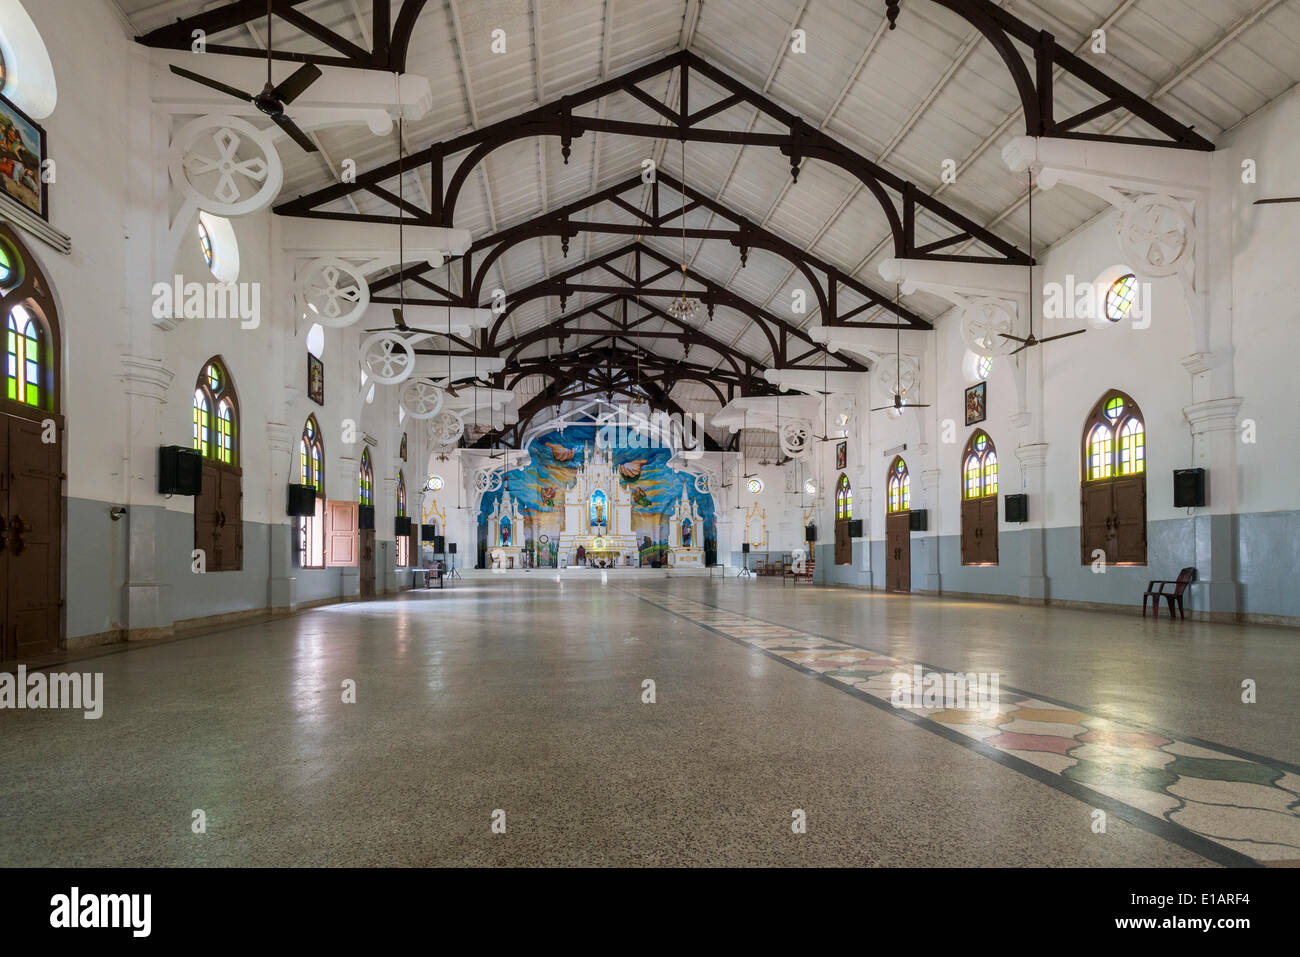 Interior view, St Mary's Church, Vizhinjam, Kerala, India - Stock Image